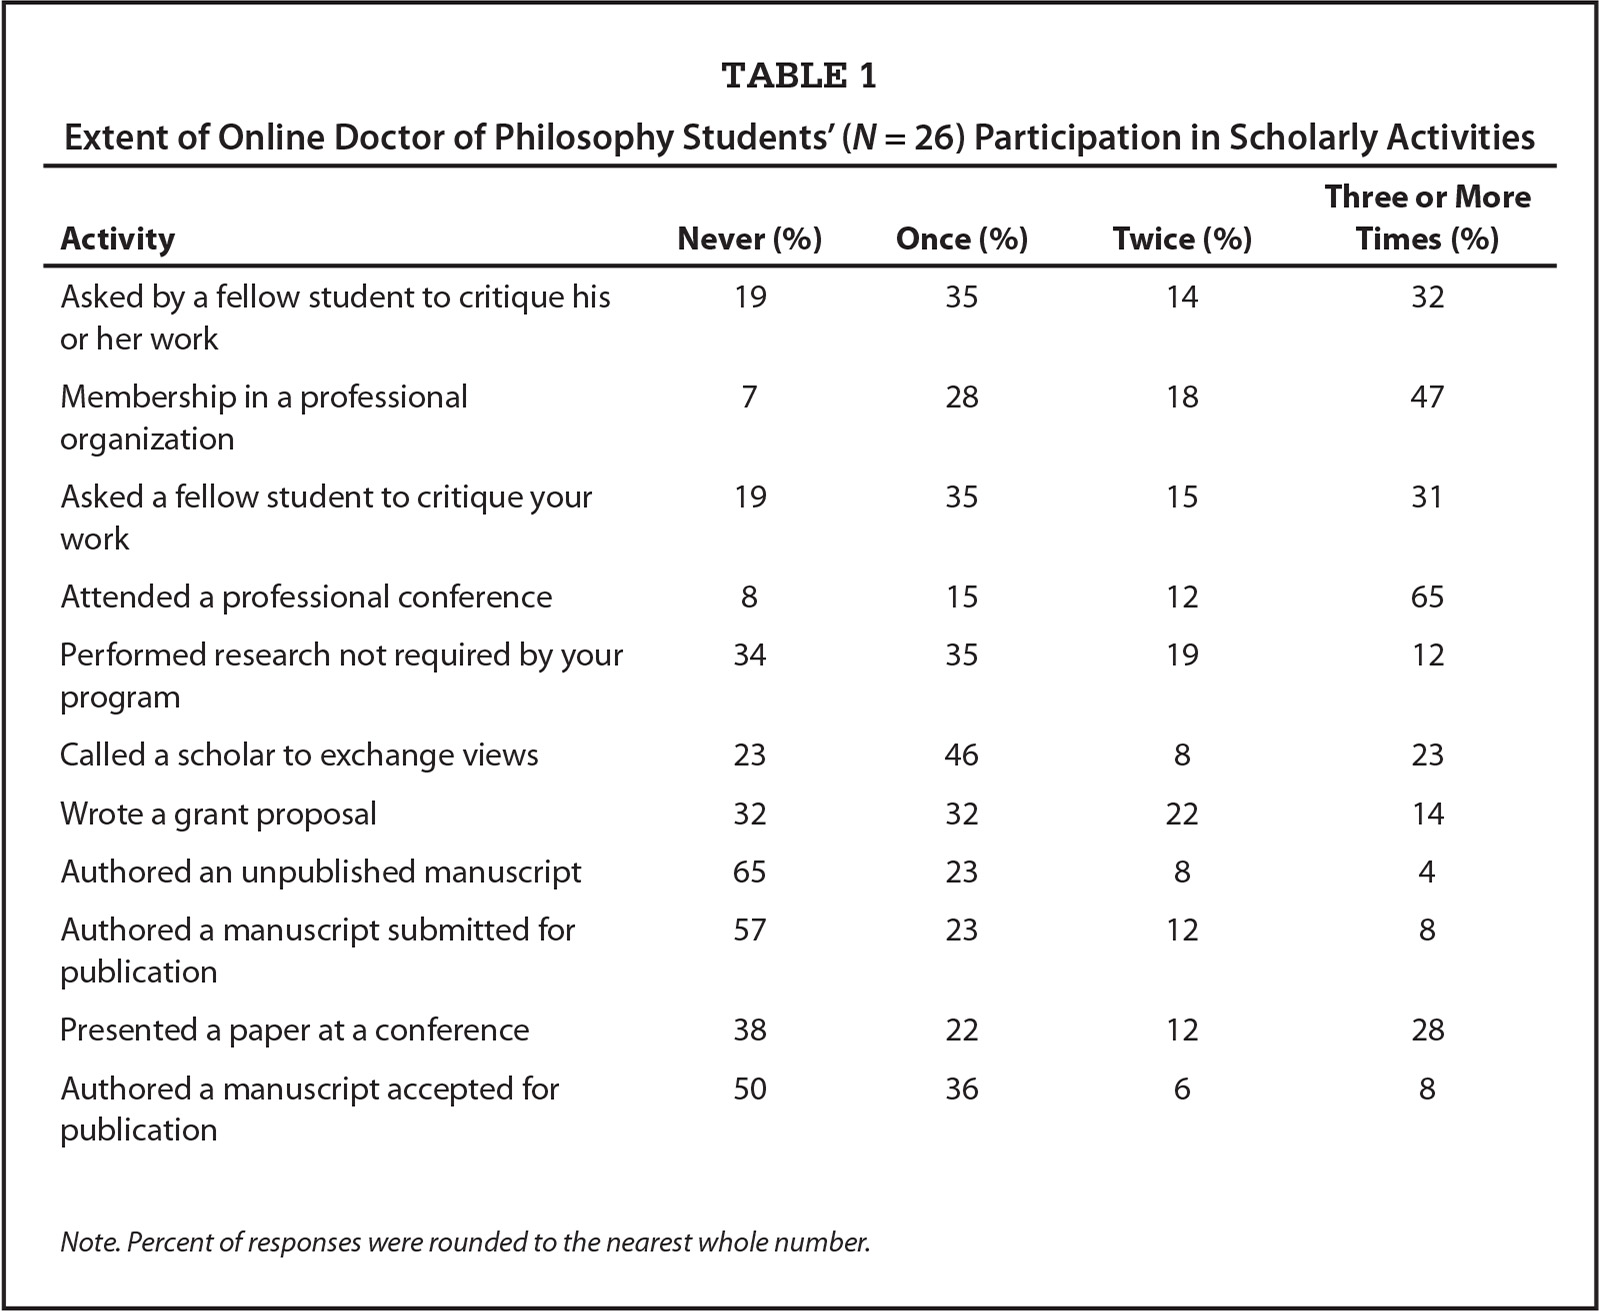 Extent of Online Doctor of Philosophy Students' (N = 26) Participation in Scholarly Activities